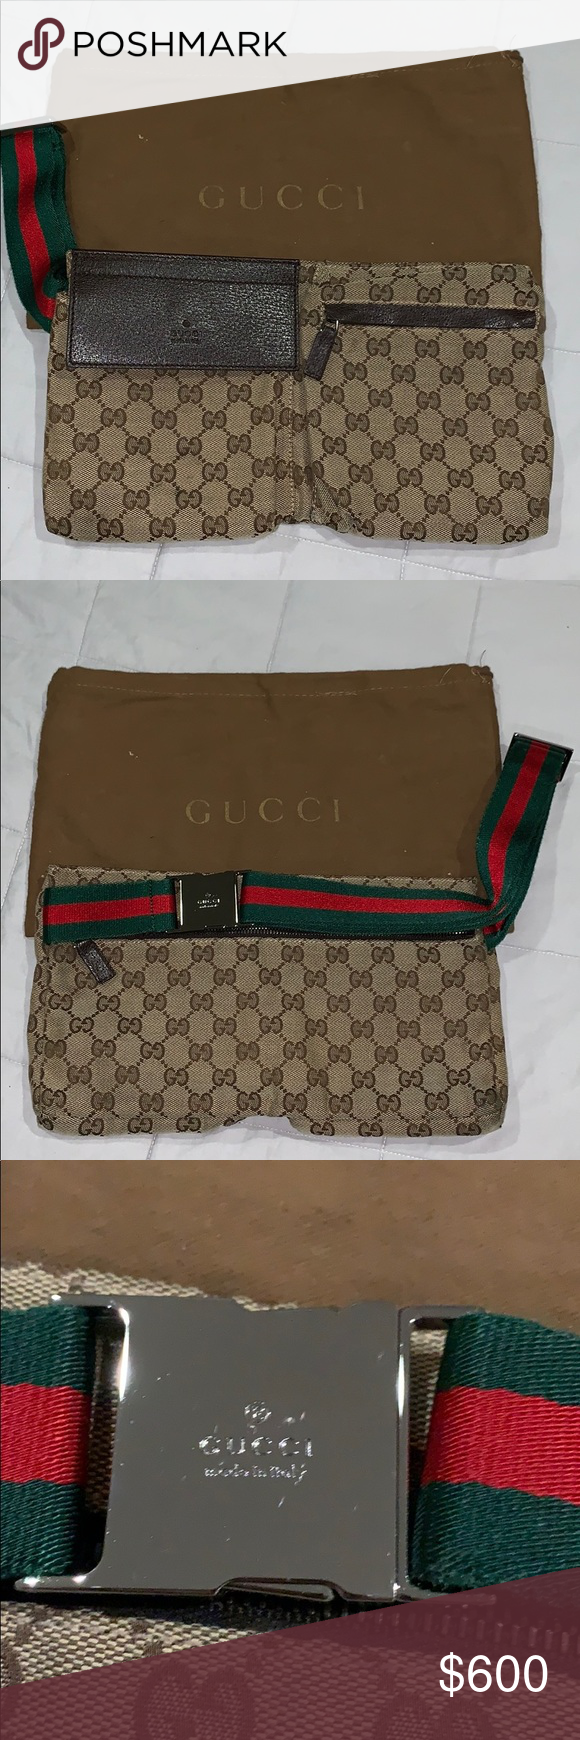 37ed59855a4 Gucci Italy GG Brown Webby Fanny Pack GG monogram canvas  leather trim